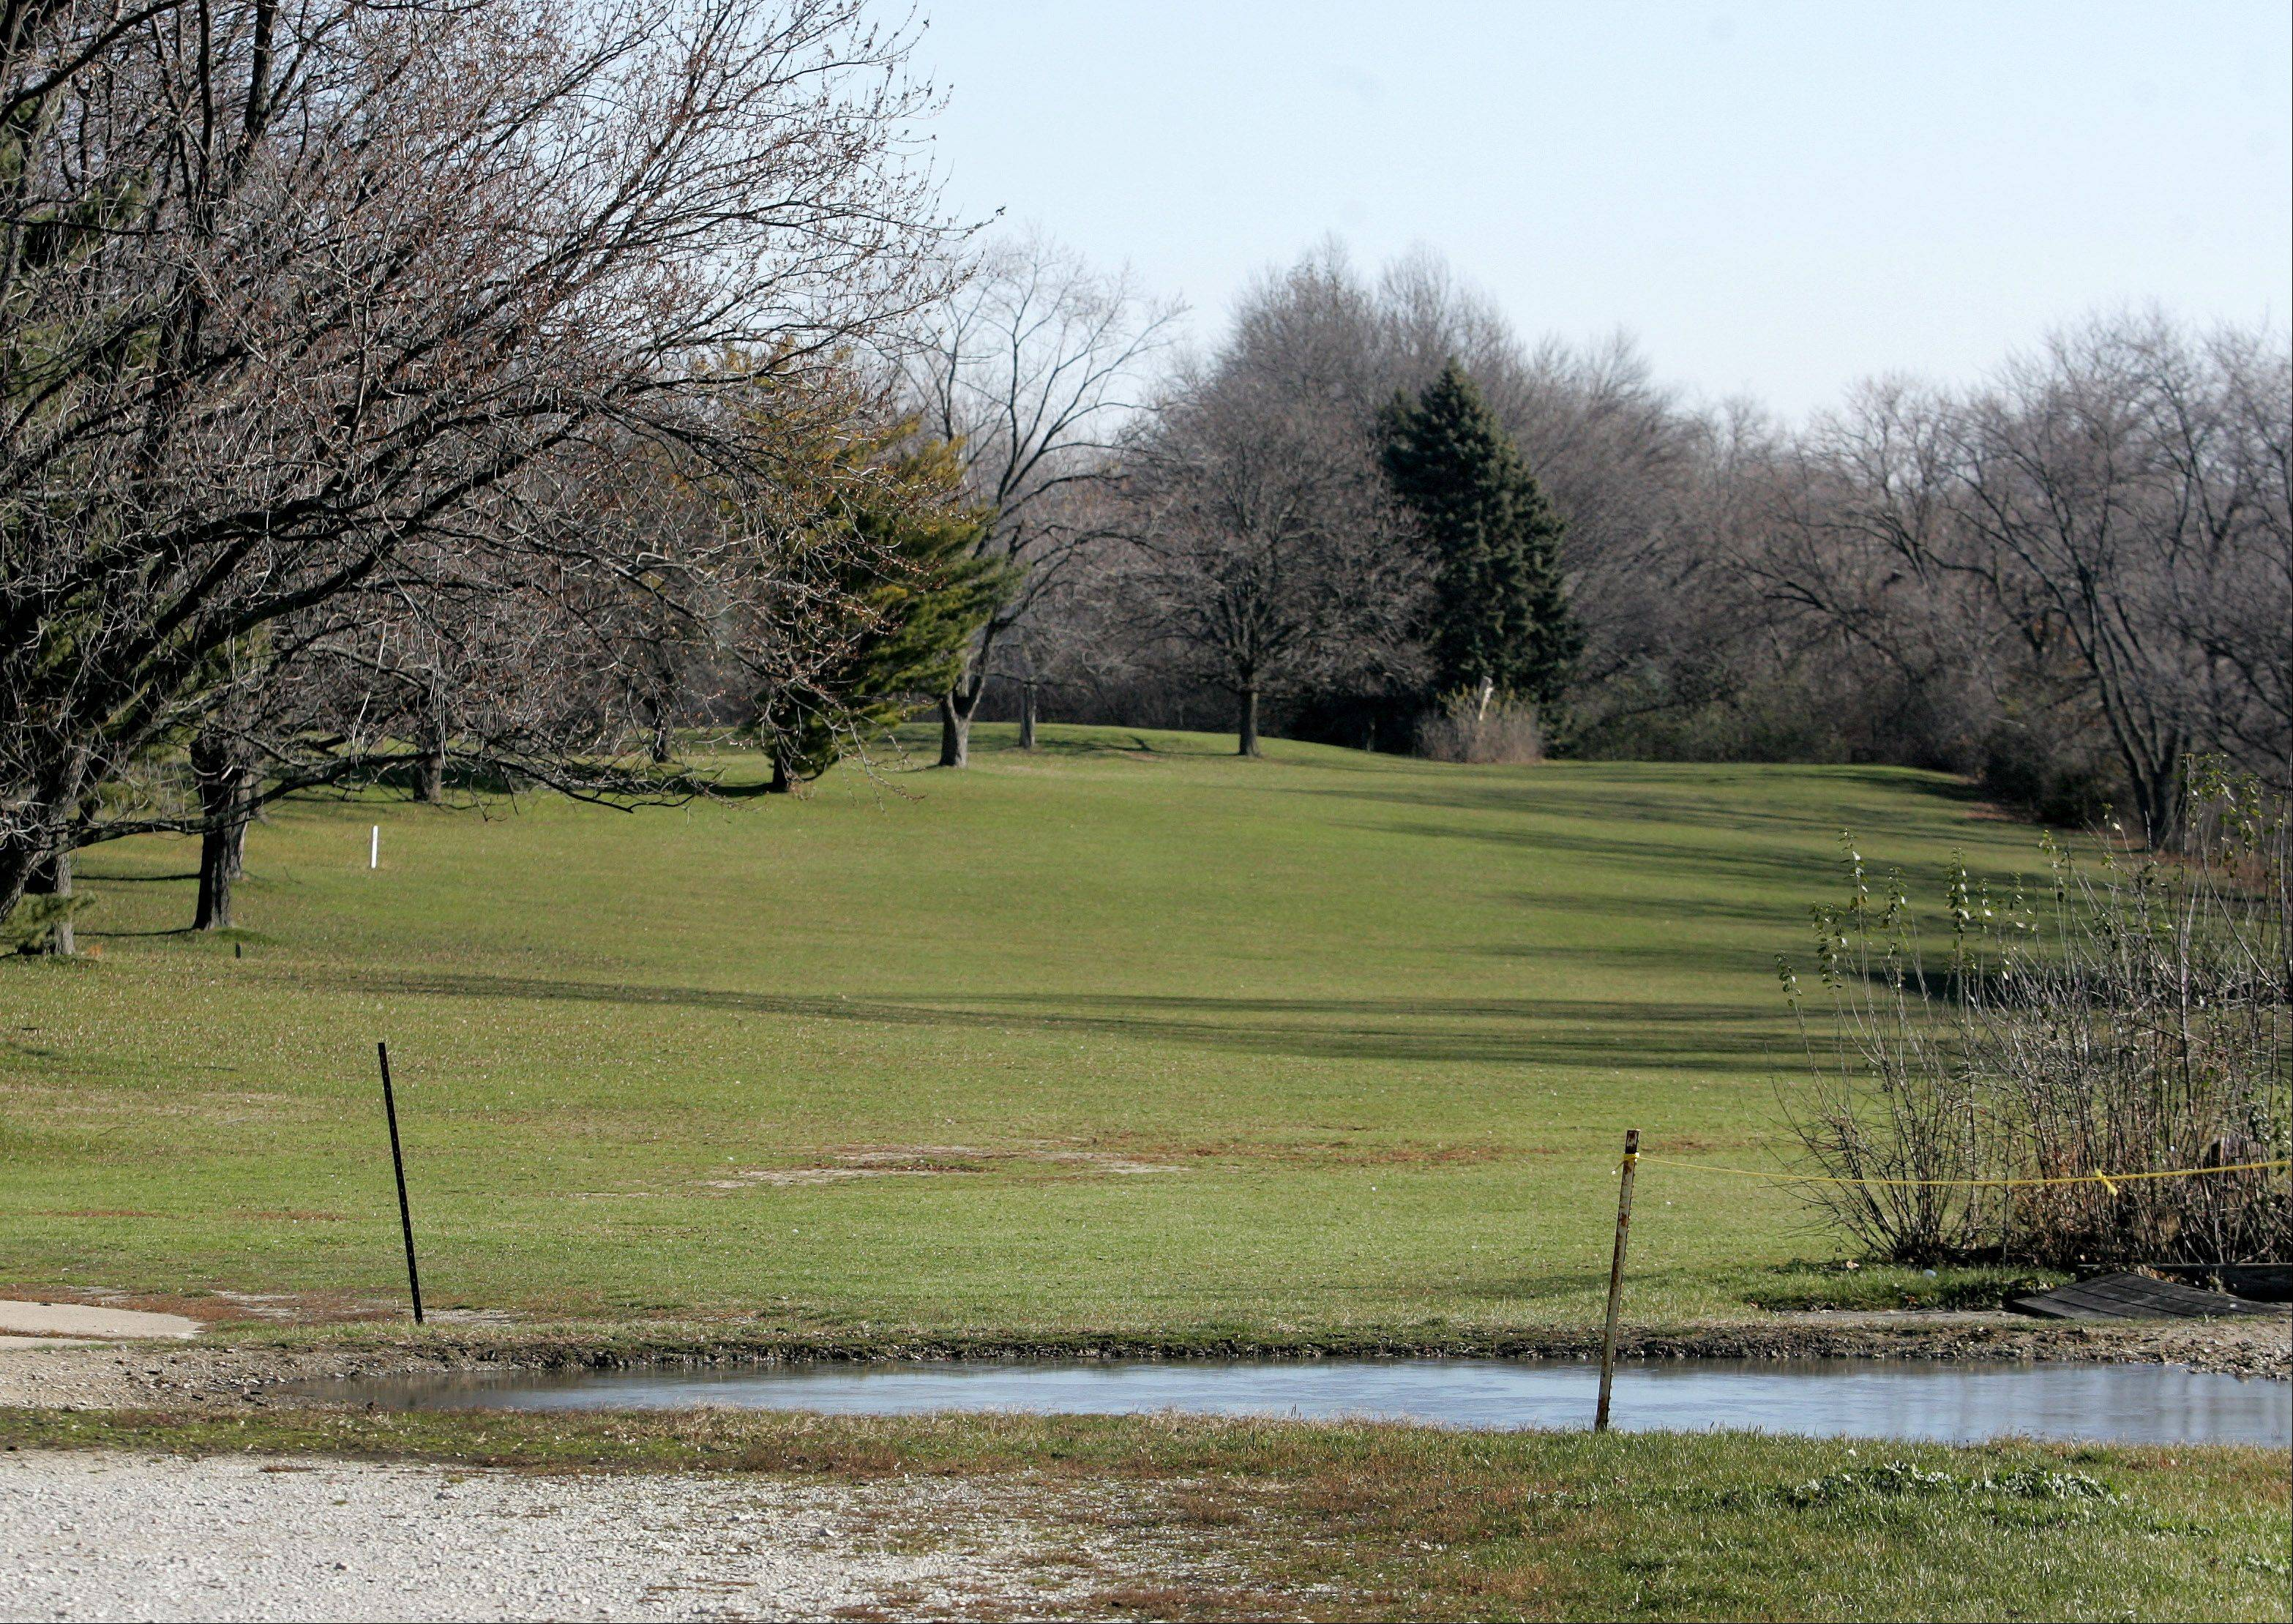 DuPage County officials are trying to decide whether a golf course near Lombard should be rezoned to allow multifamily housing on the site. Opponents, including the village of Lombard, have asked the county to leave the current zoning in place.